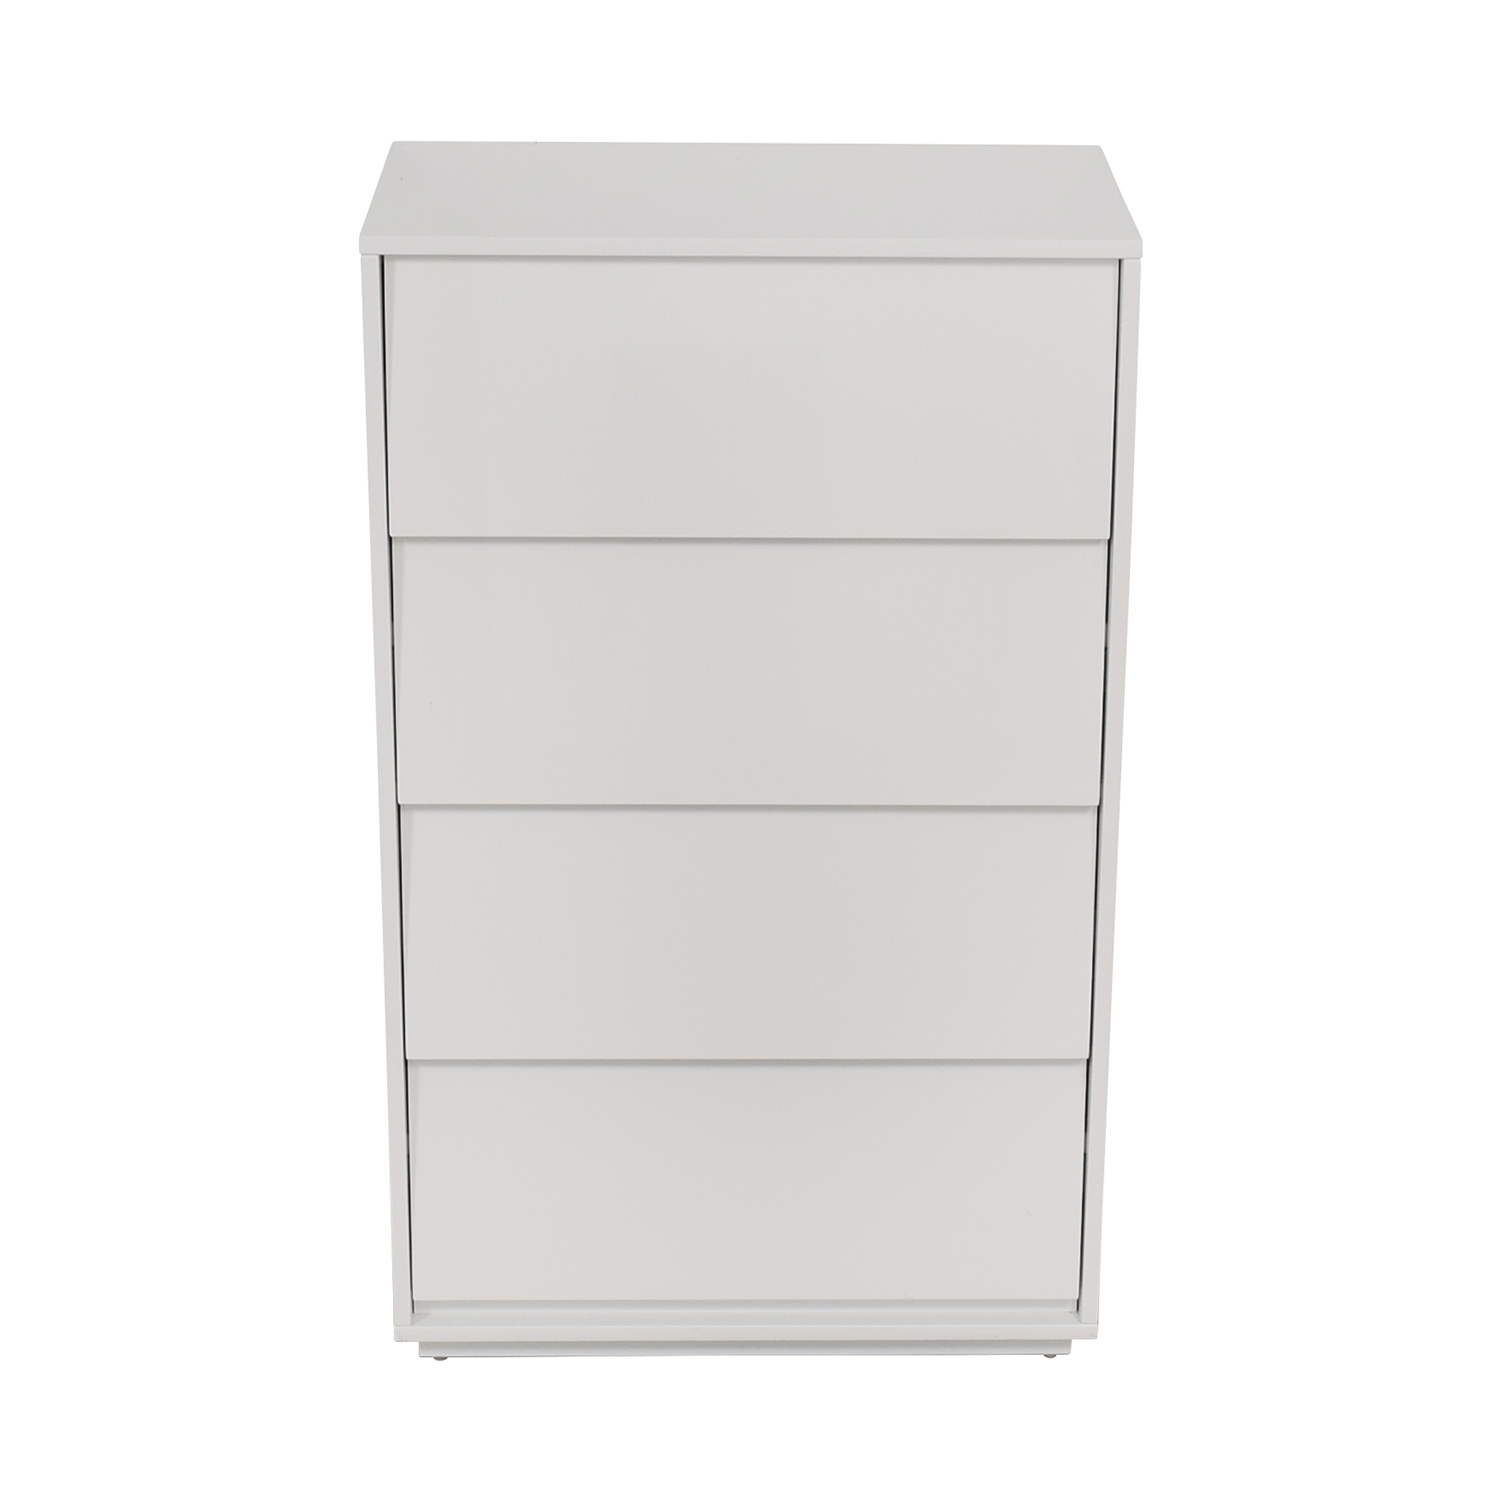 CB2 CB2 Gallery White Four Drawer Tall Chest for sale